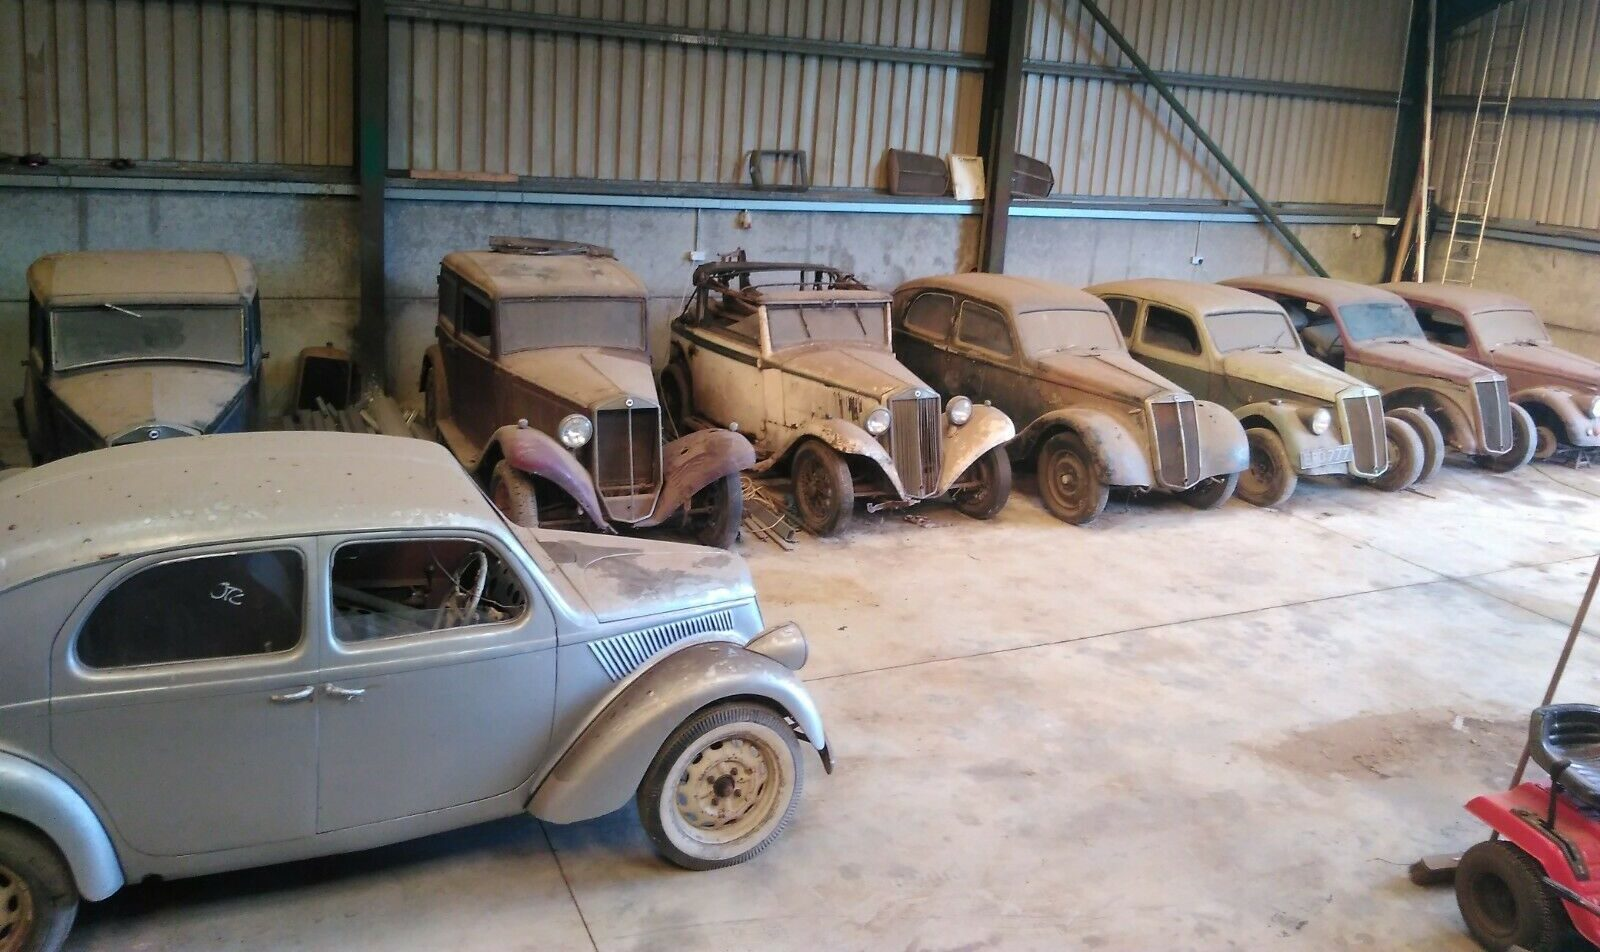 Are you brave enough to take on this pre-war Lancia barn find collection?